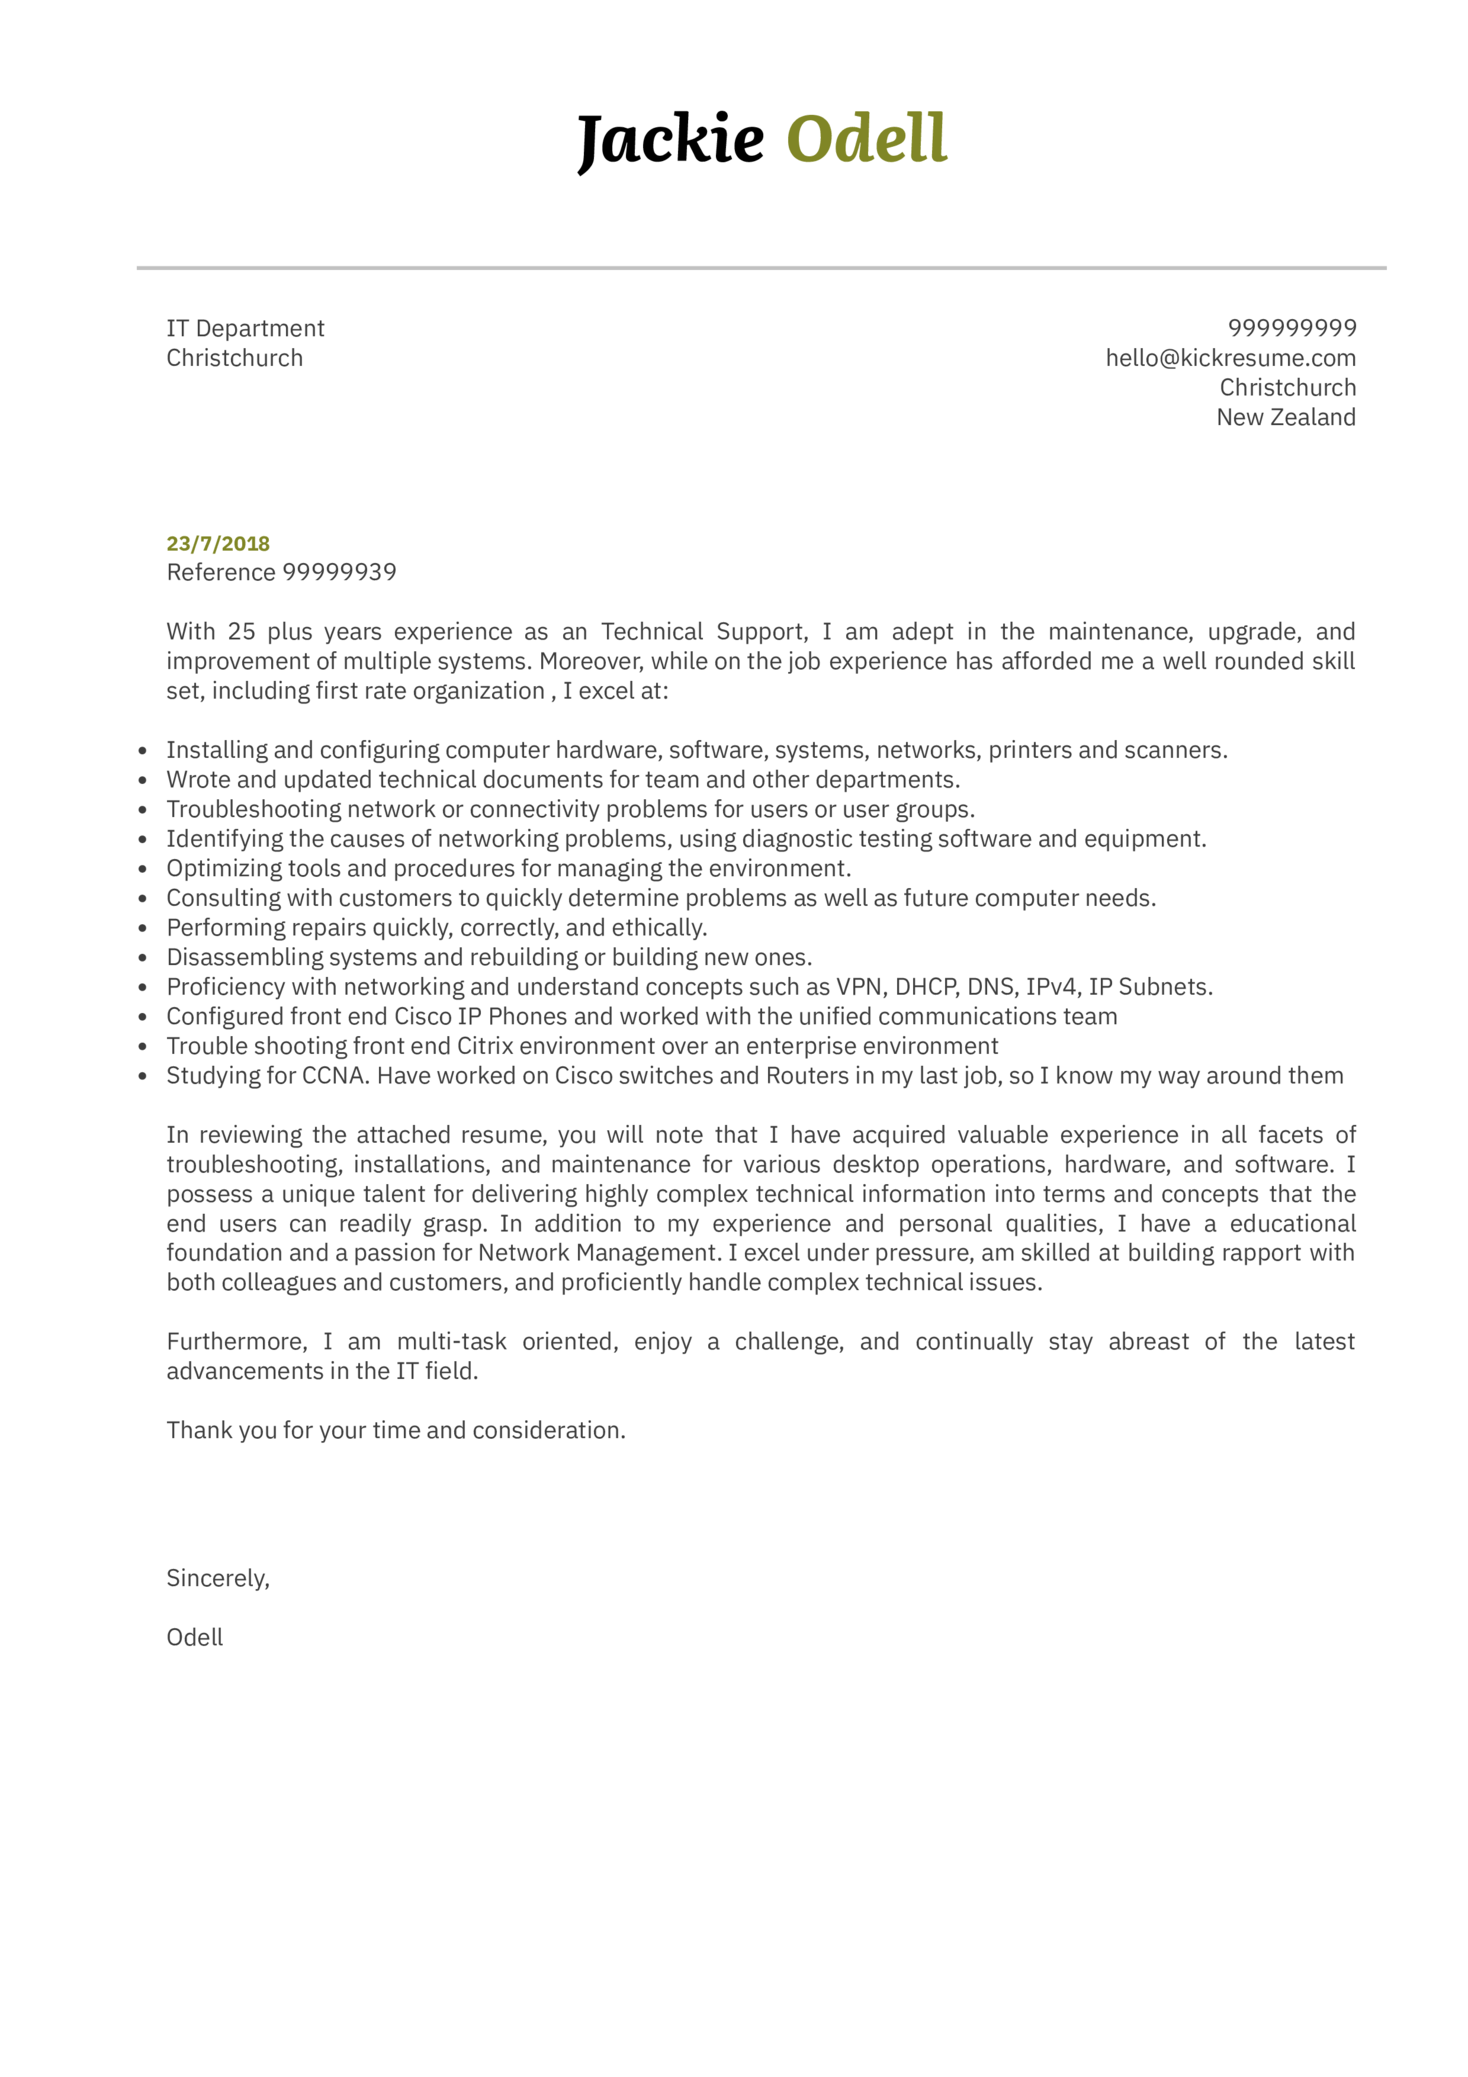 cover letter for support specialist - Mahre.horizonconsulting.co